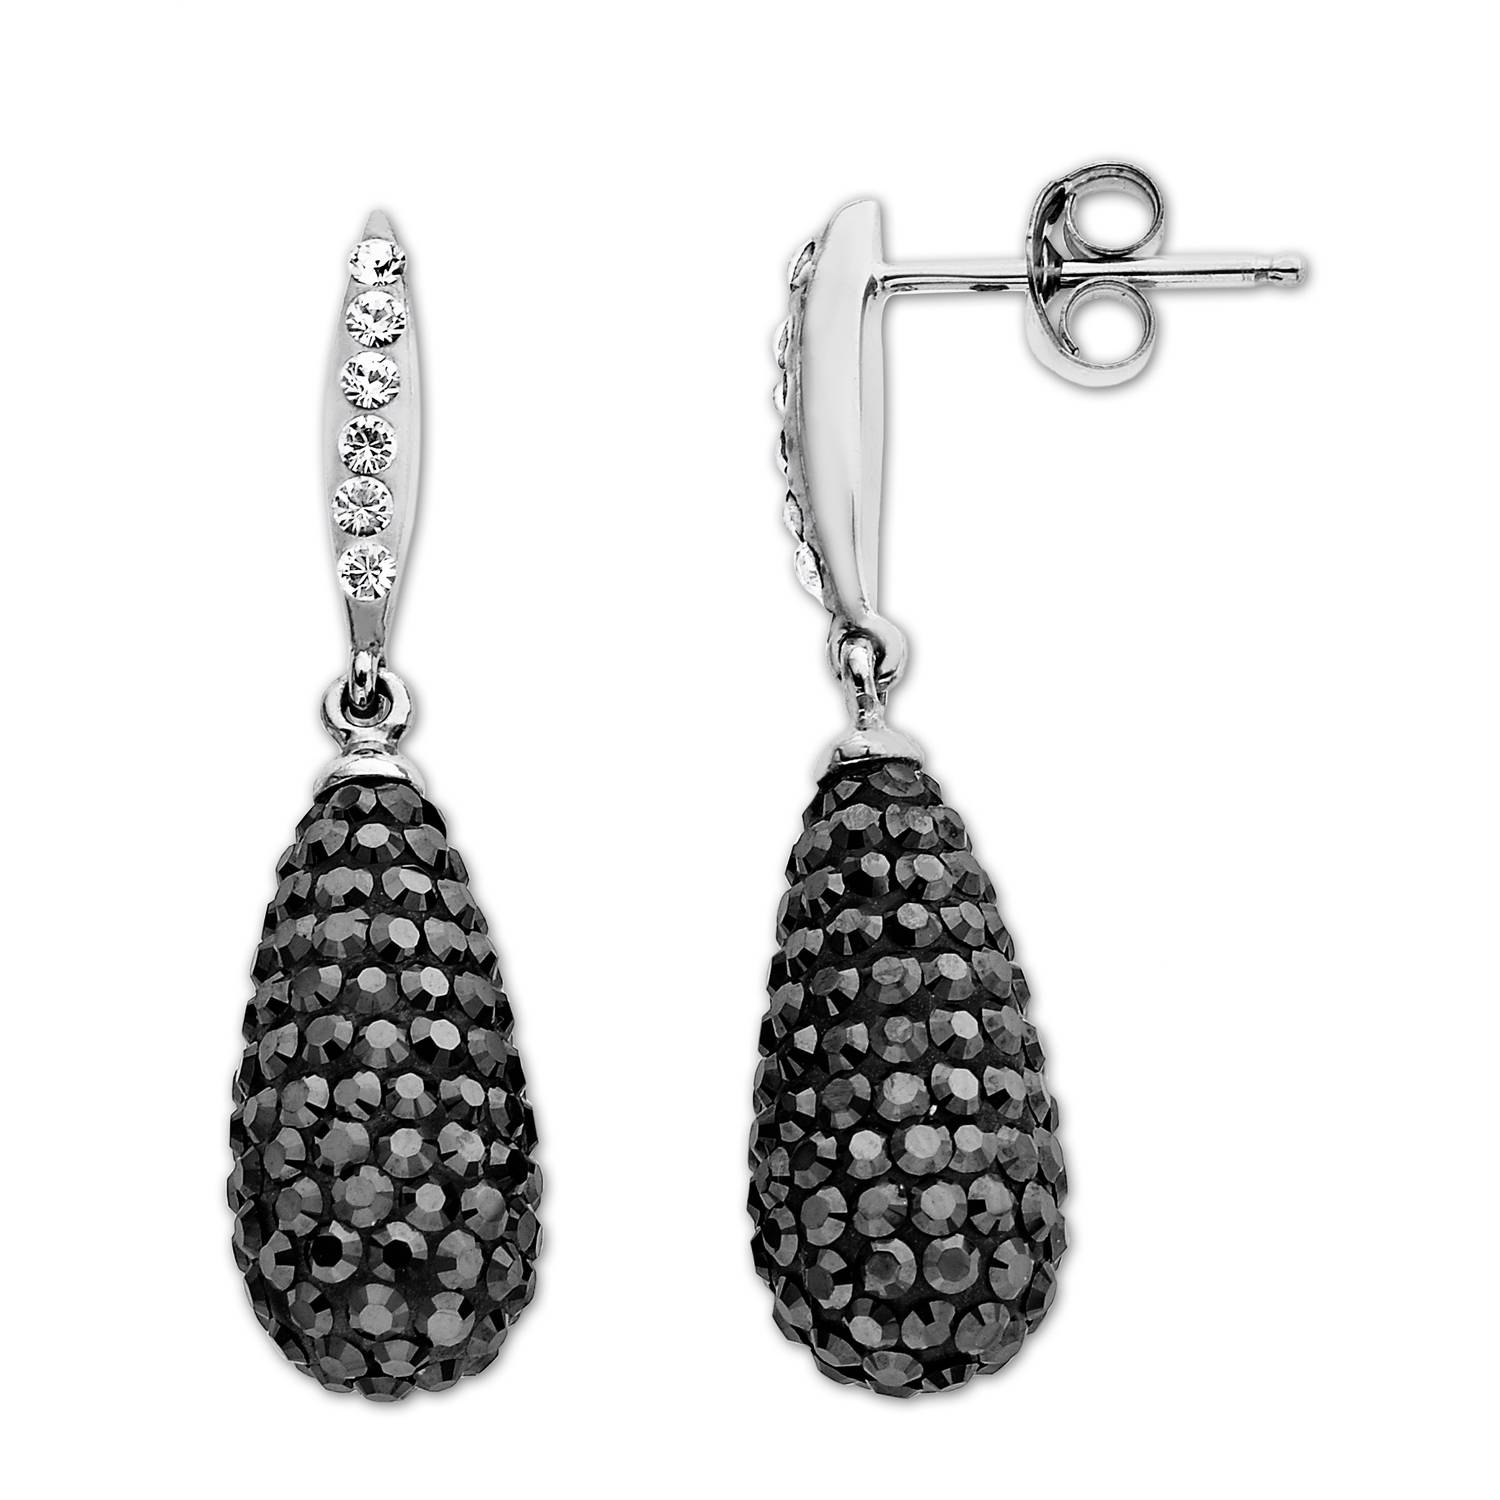 Luminesse Black Drop Earrings in Sterling Silver with Swarovski Elements